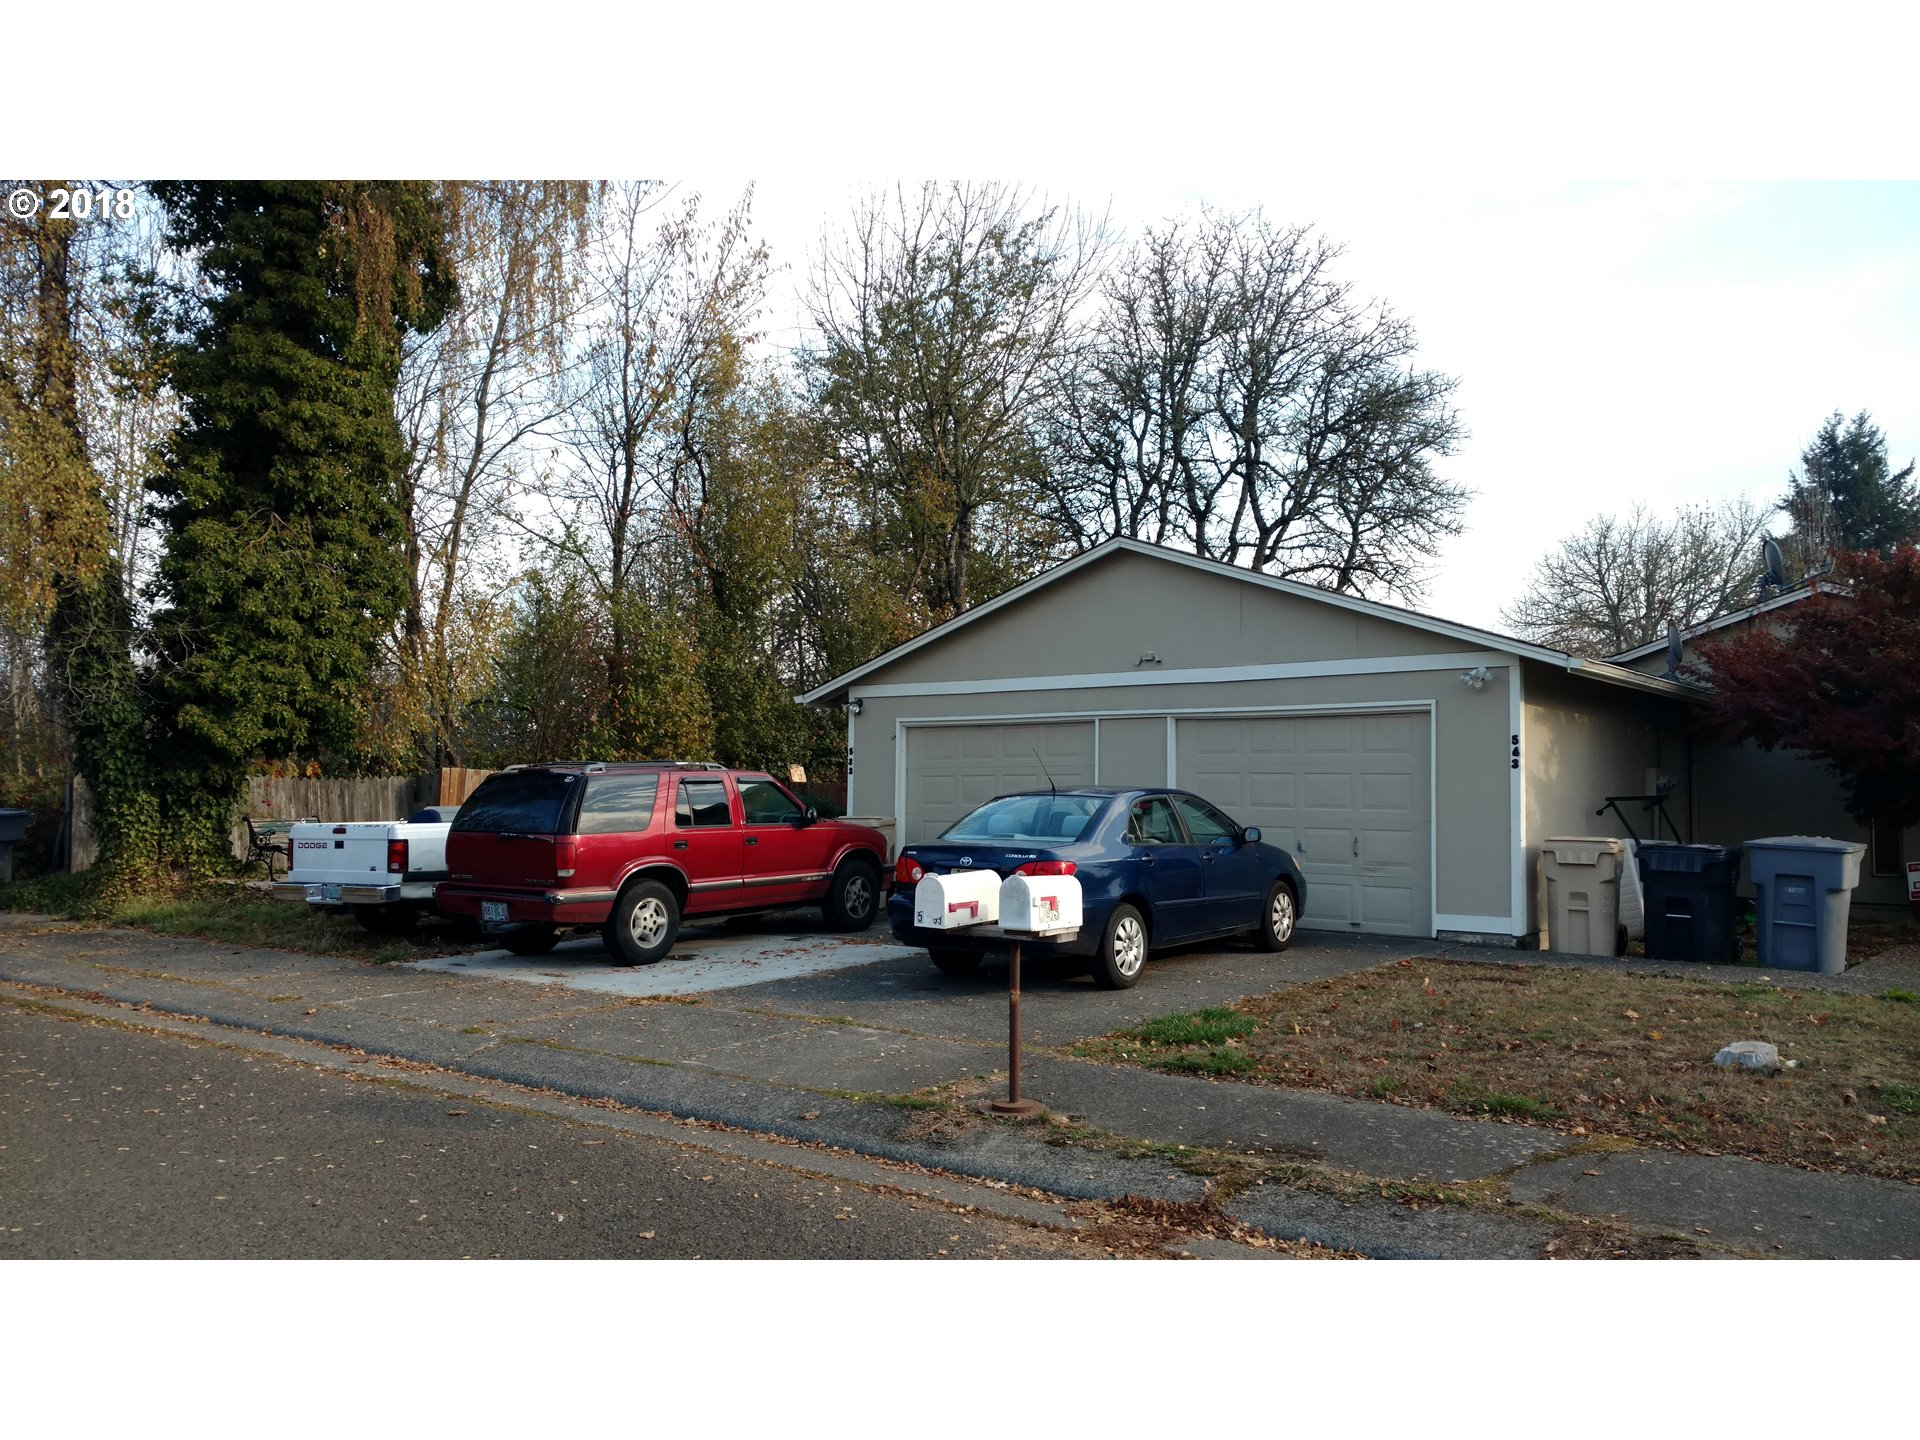 533 S 16TH ST Lebanon, OR 97355 - MLS #: 18492737